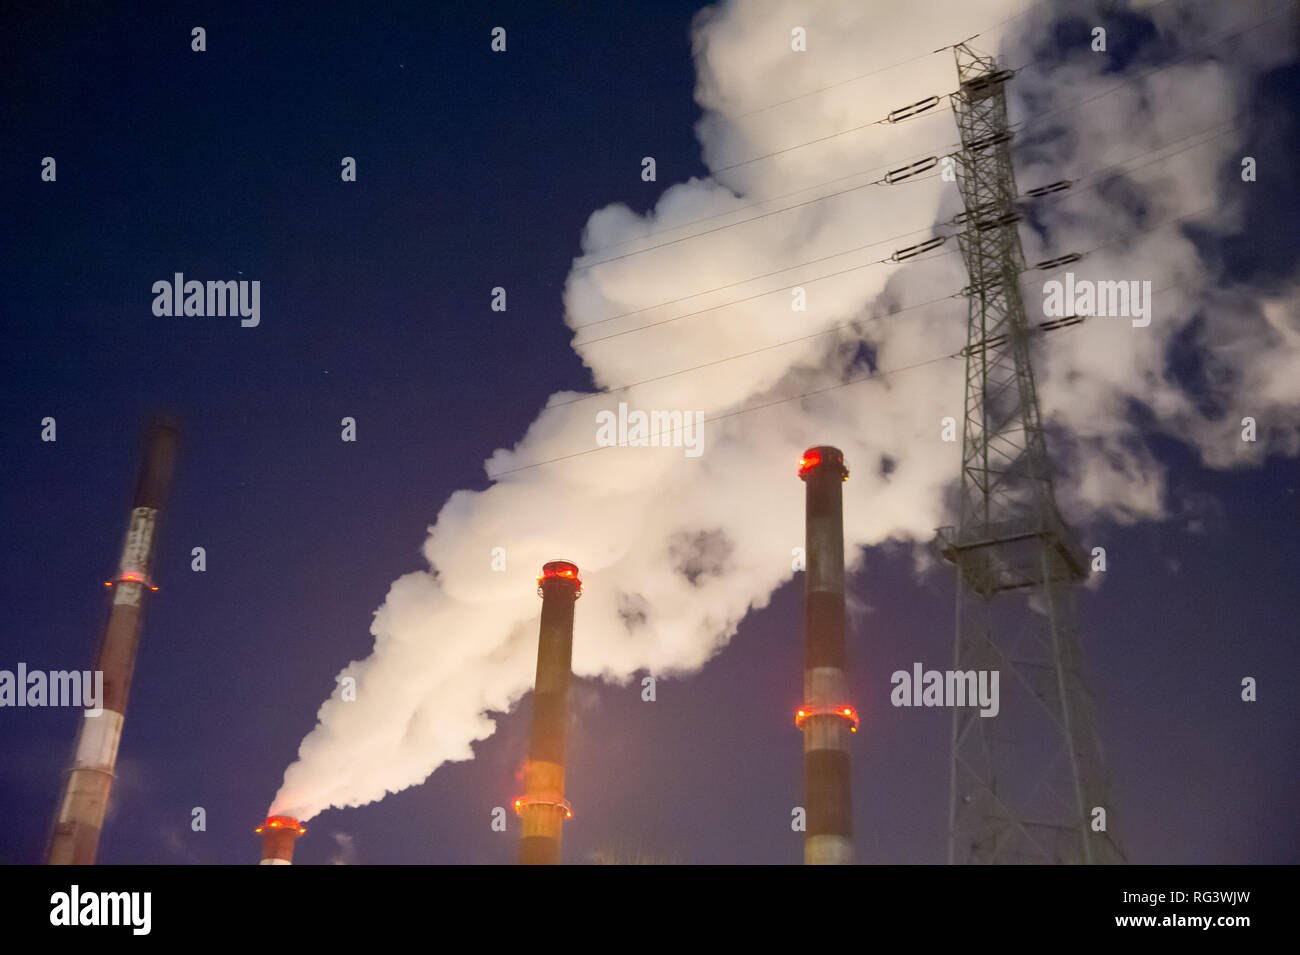 Gdansk Power Station (Elektrocieplownia Wybrzeze) in Gdansk, Polonia. Il 20 gennaio 2019 © Wojciech Strozyk / Alamy Stock Photo Immagini Stock